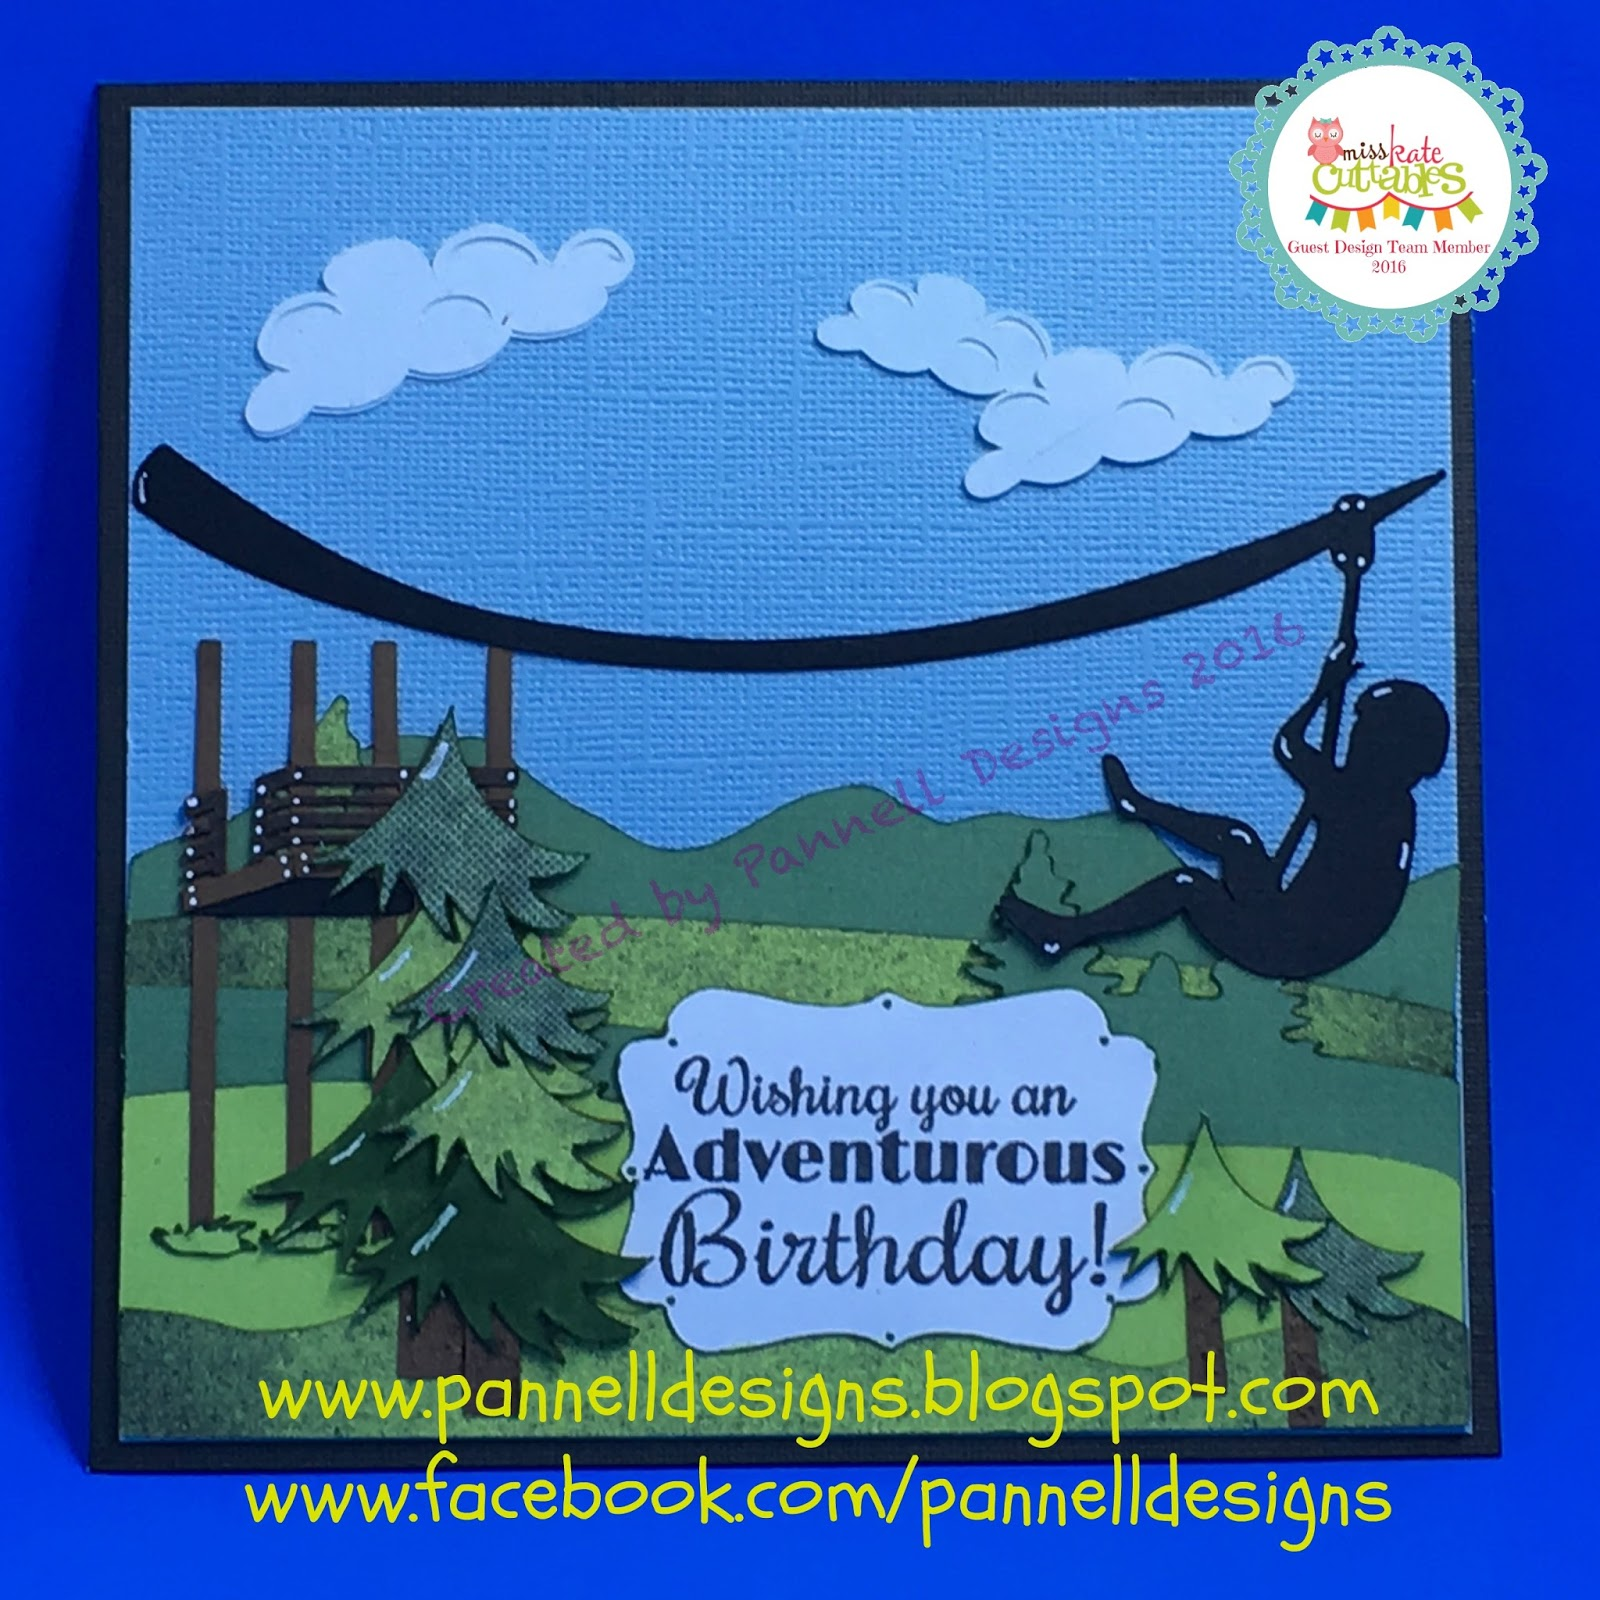 Ziplining scrapbook ideas - I Then Made Some Birthday Cards From The Happy Days File I Have Some Friends That Have Some Milestone Birthdays Coming Up So I Thought This Set Would Be